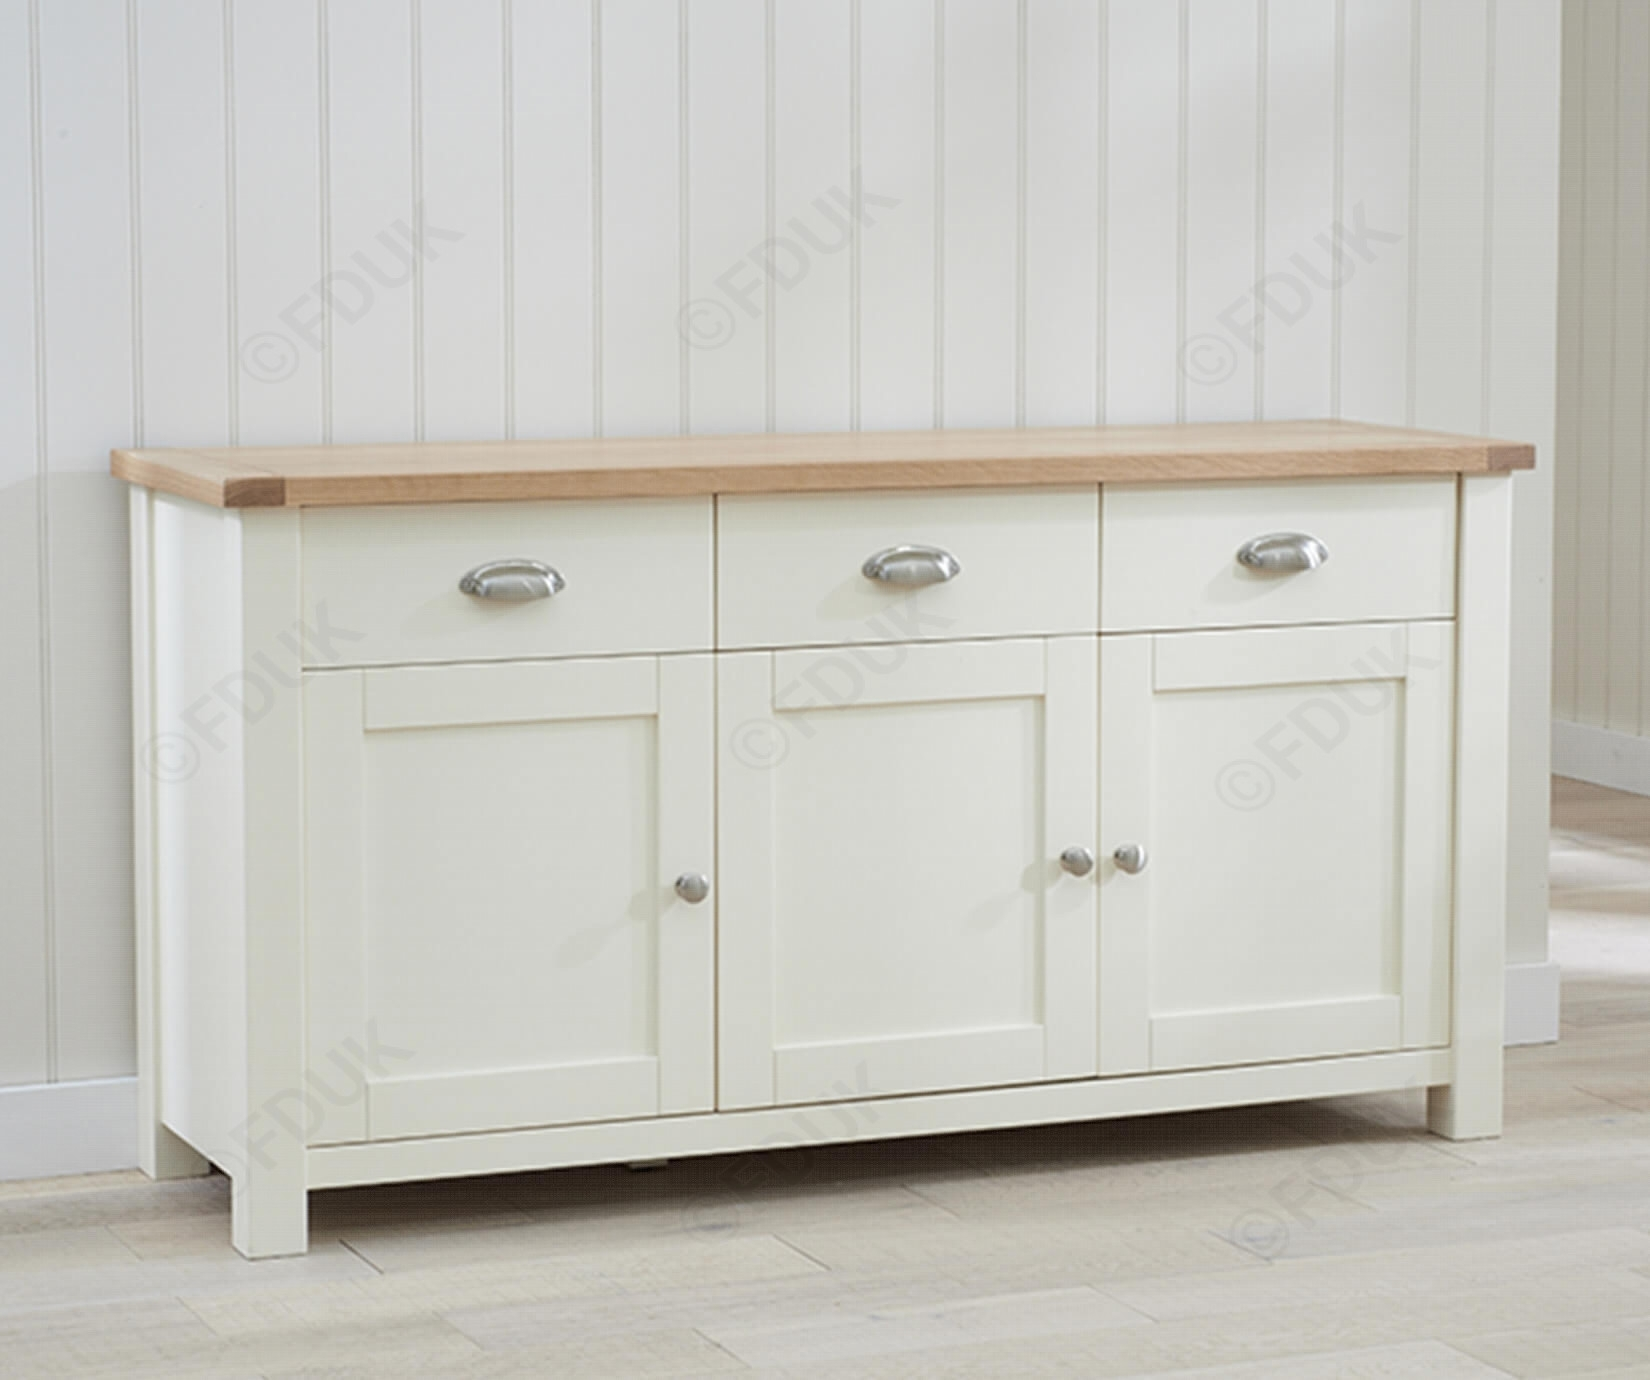 Mark Harris Sandringham | Sandringham Oak And Cream 3 Door 3 Drawer regarding 3-Door 3-Drawer Metal Inserts Sideboards (Image 16 of 30)